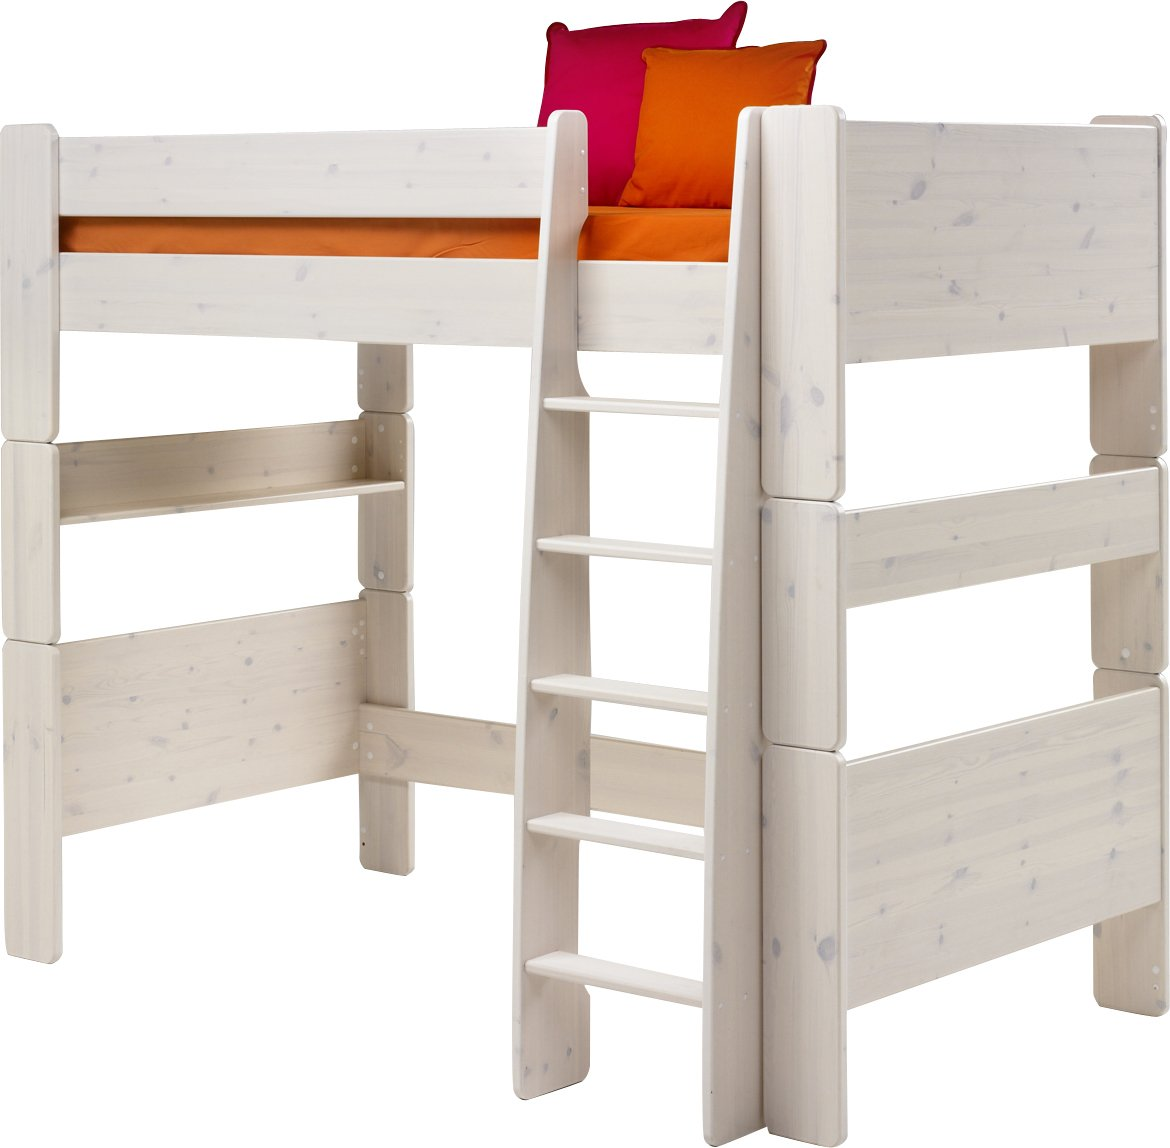 hochbett steens for kids hochbetten test. Black Bedroom Furniture Sets. Home Design Ideas